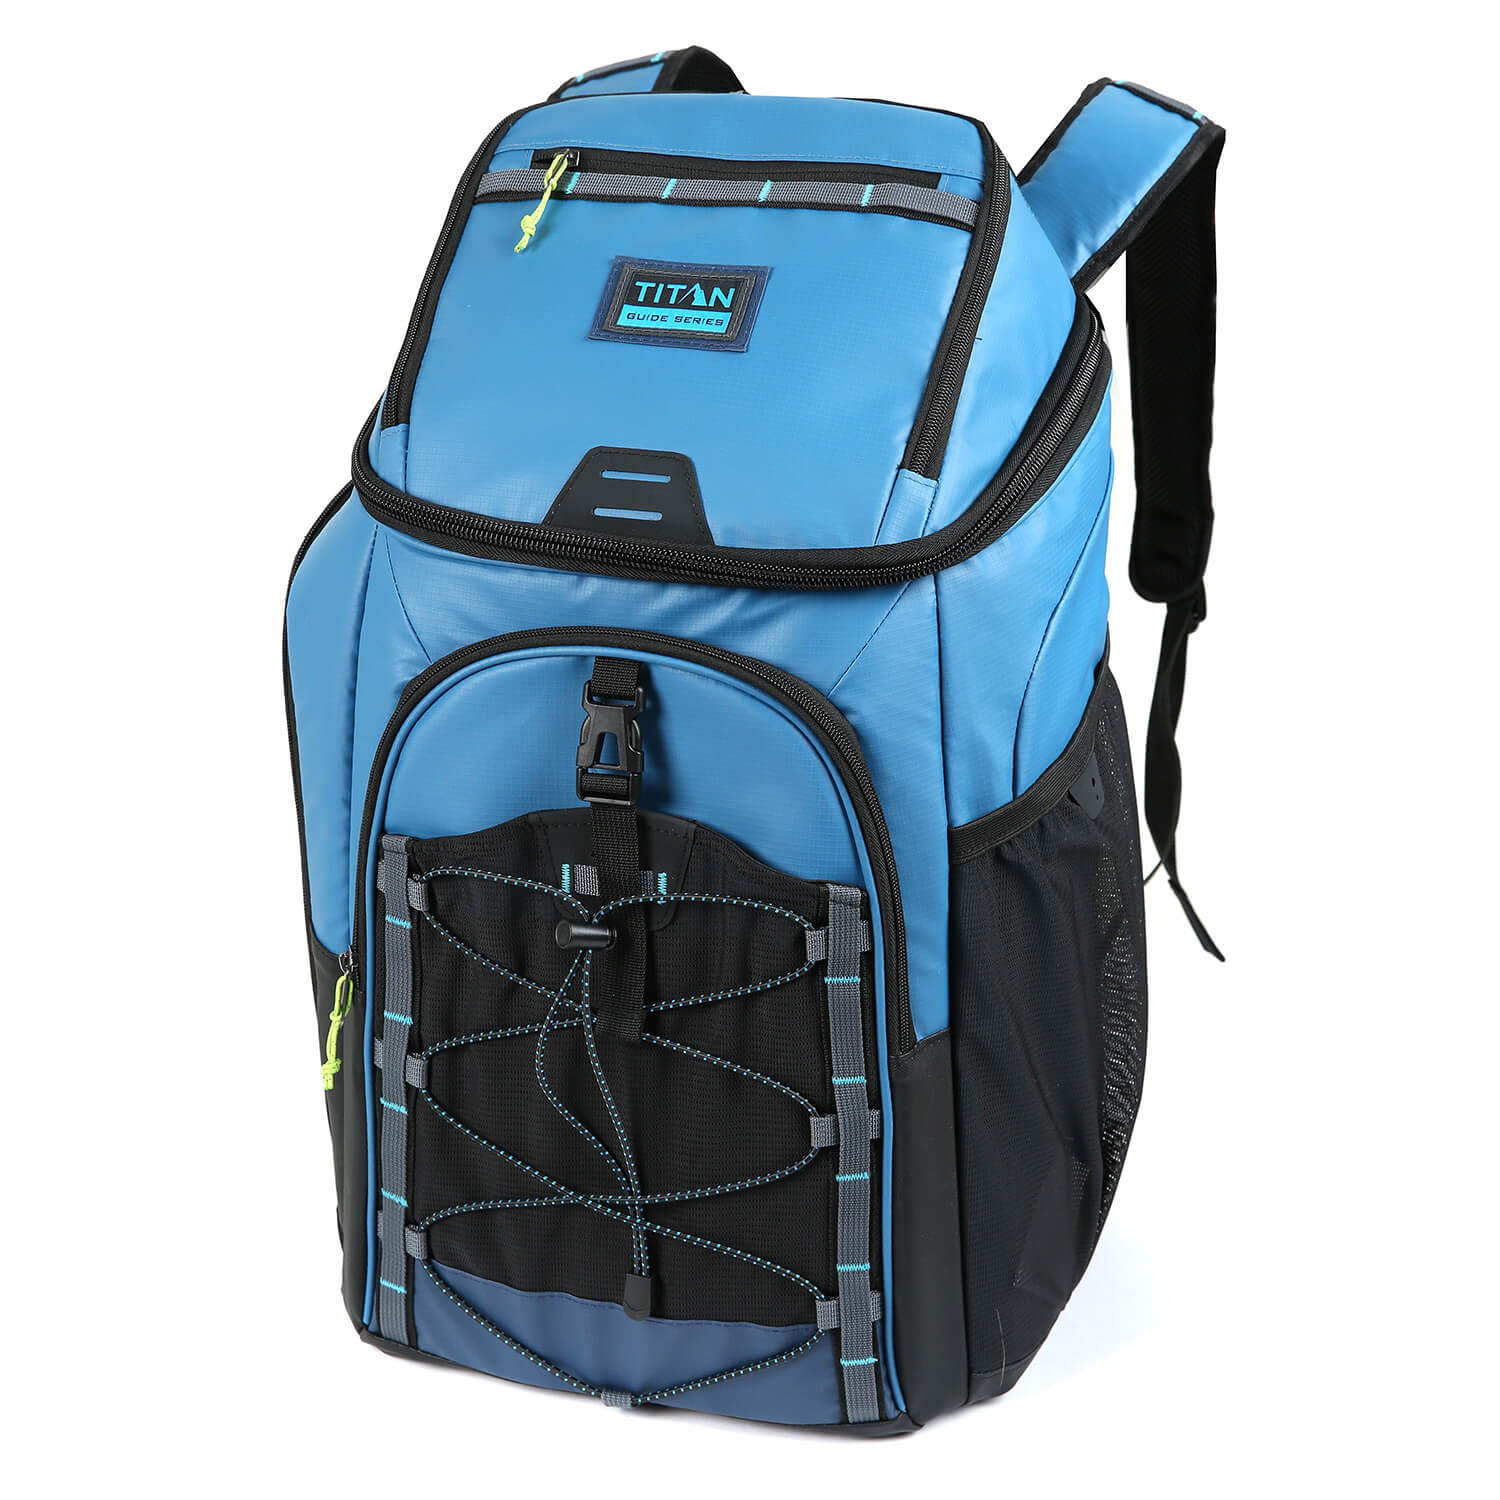 Titan Guide Series™ 30 Can Backpack Cooler - Front, closed